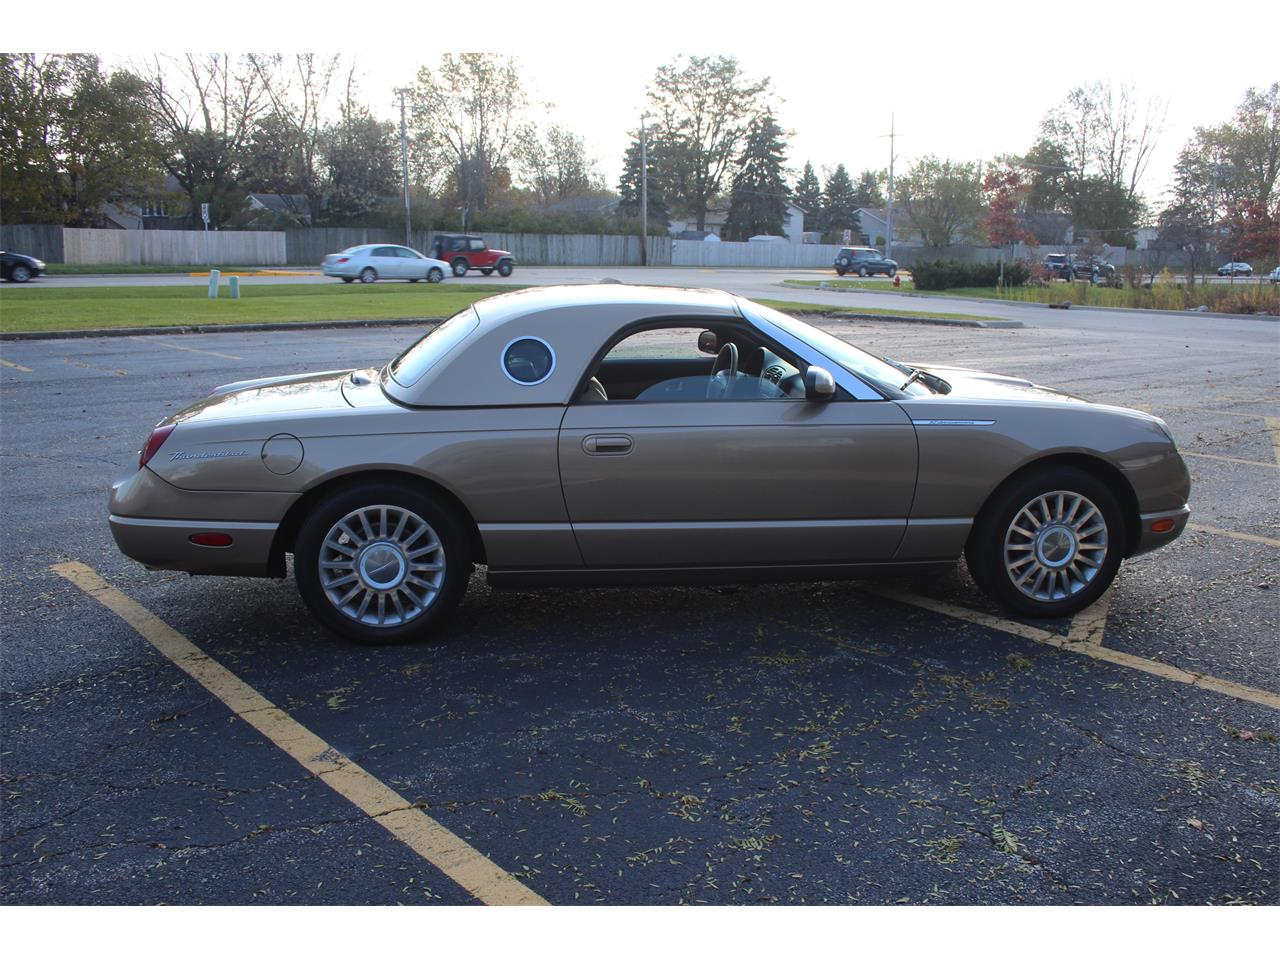 Large Picture of 2005 Thunderbird located in lake zurich Illinois - $18,900.00 - PU87